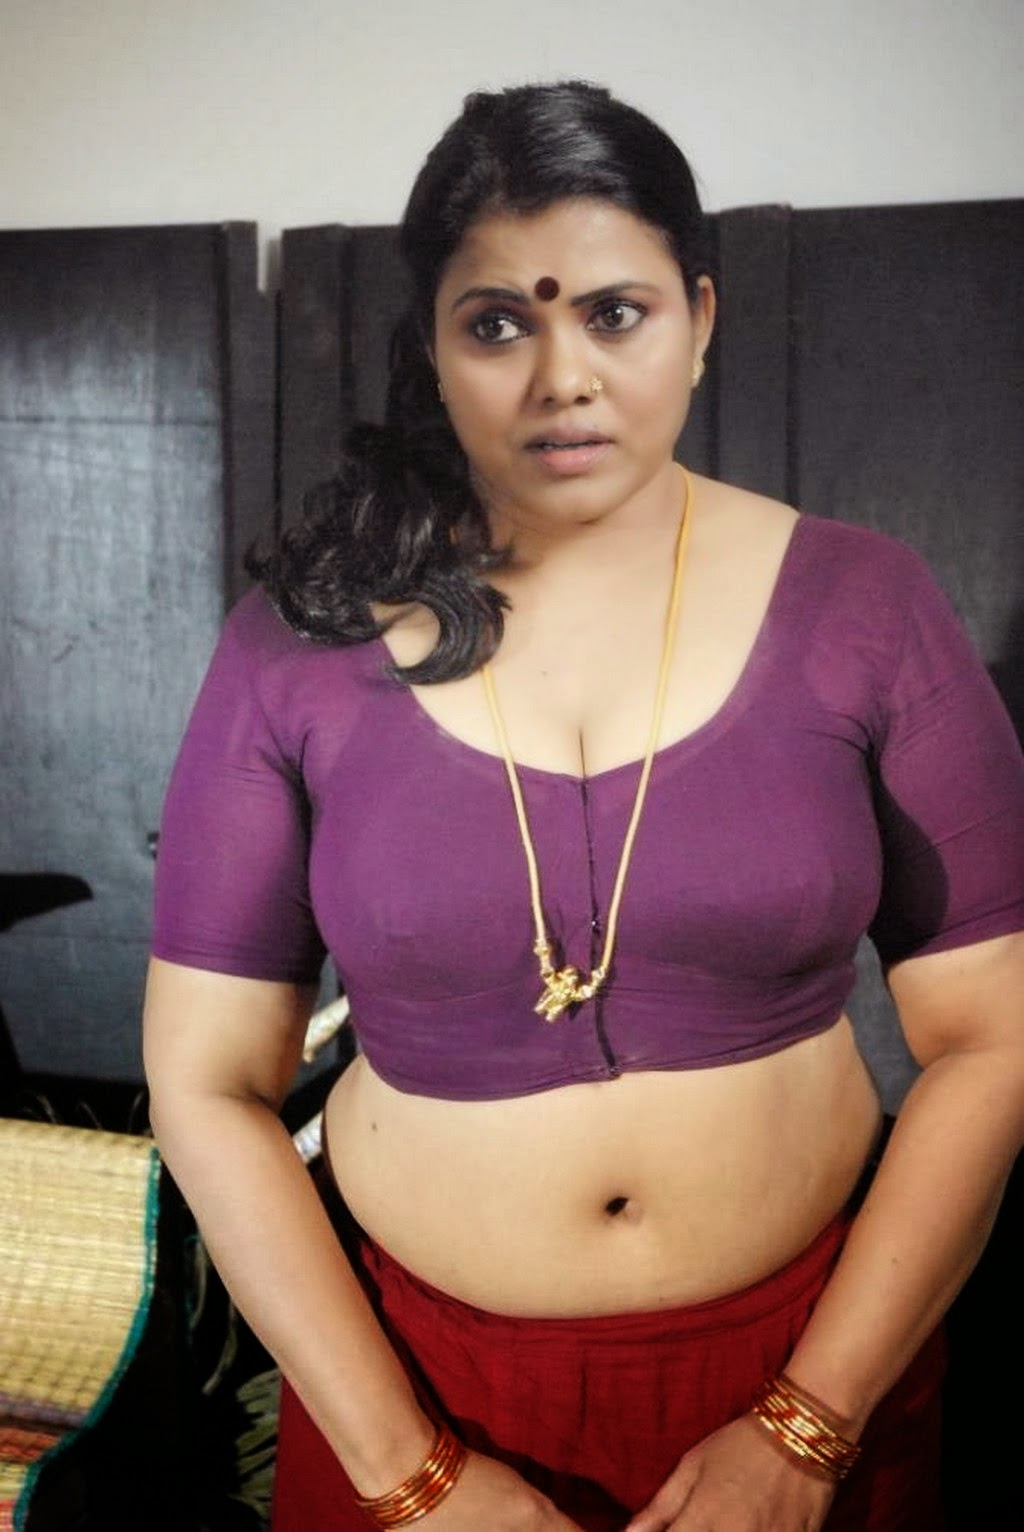 Pink blouse bhabhi hot